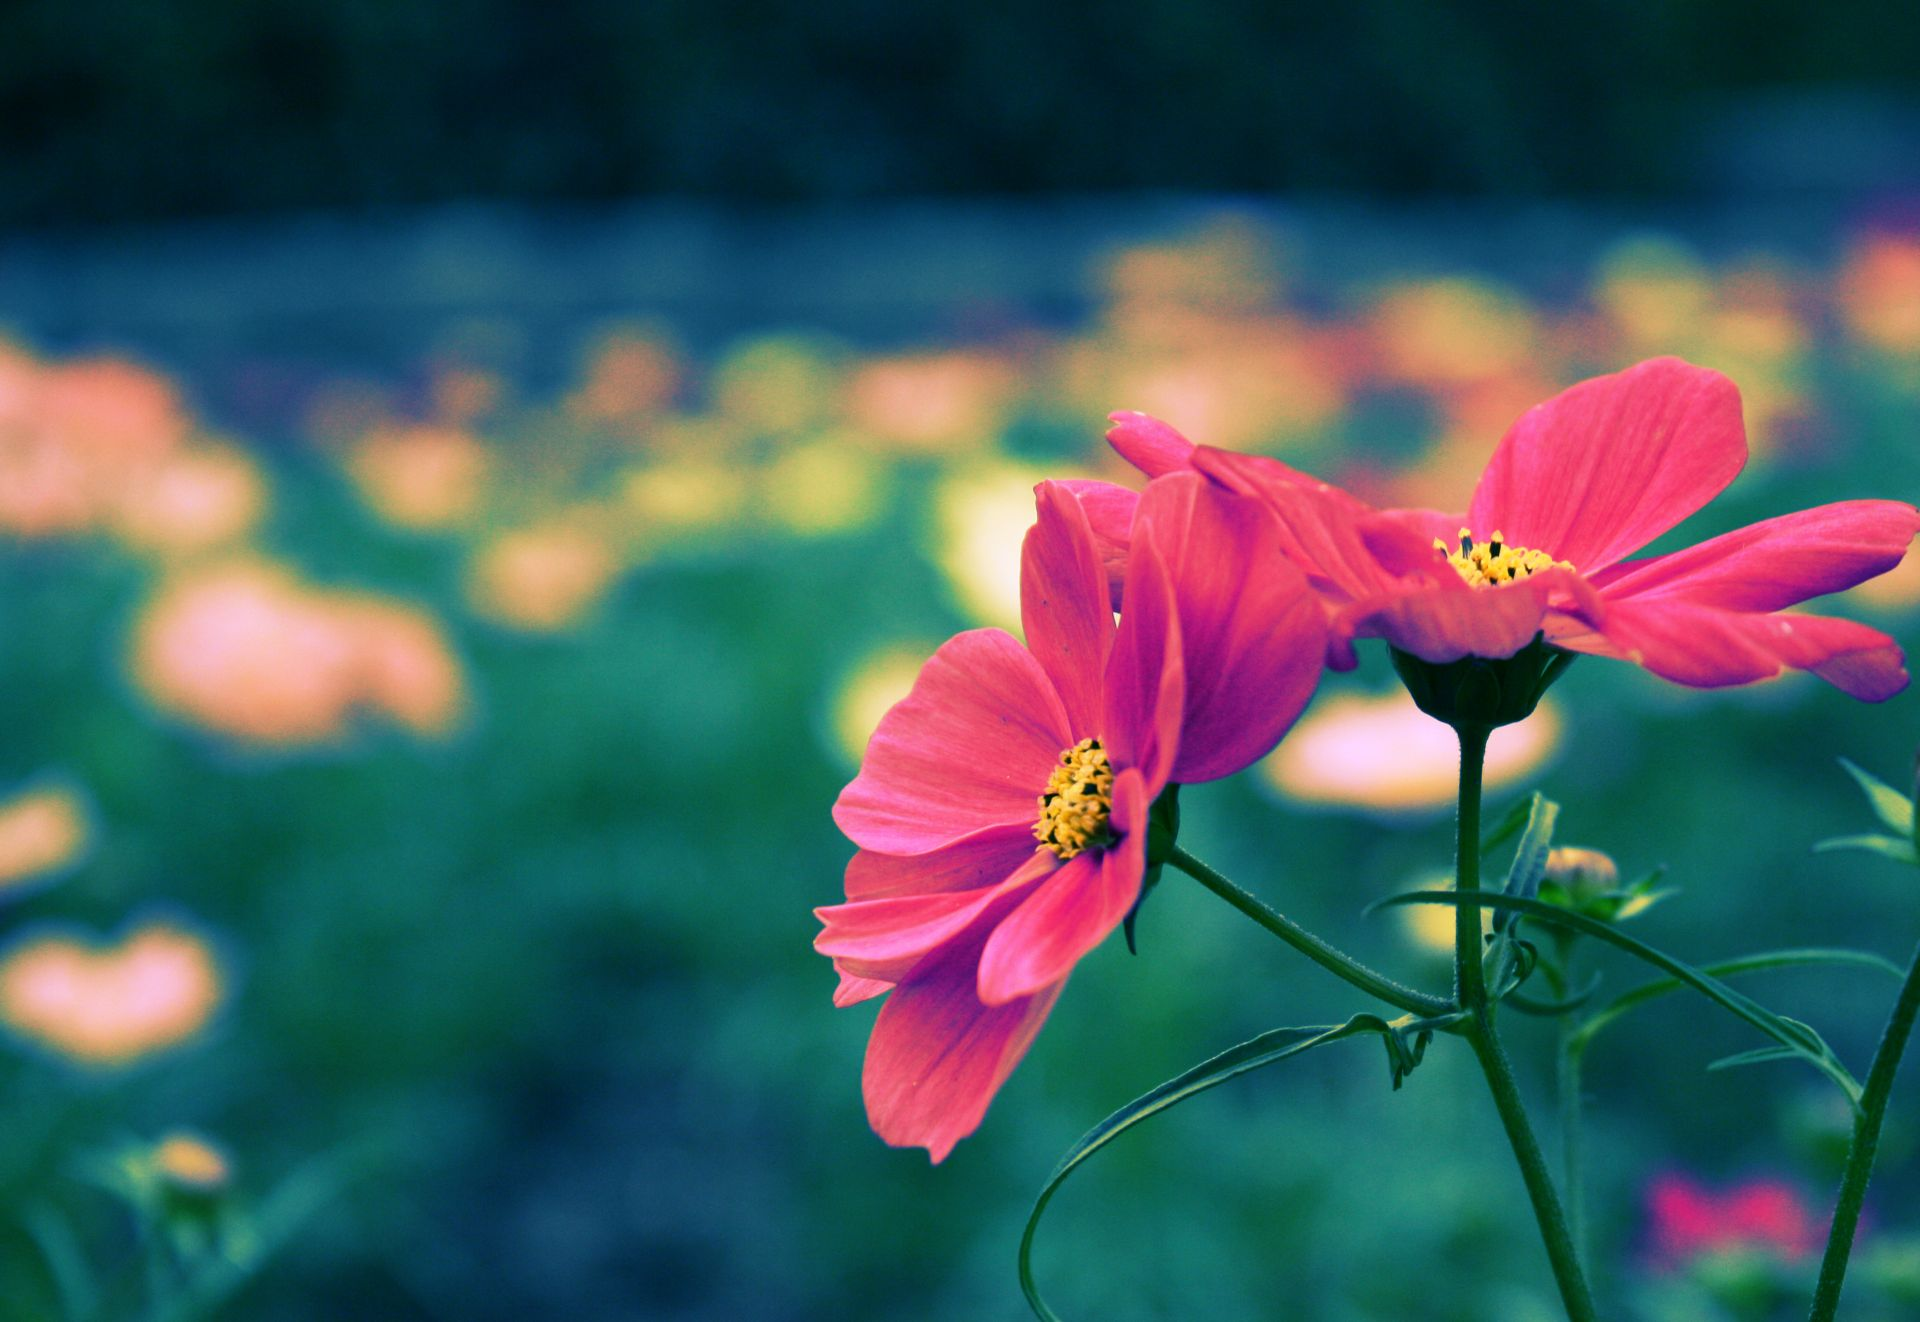 cute little flowers wallpaper - photo #15